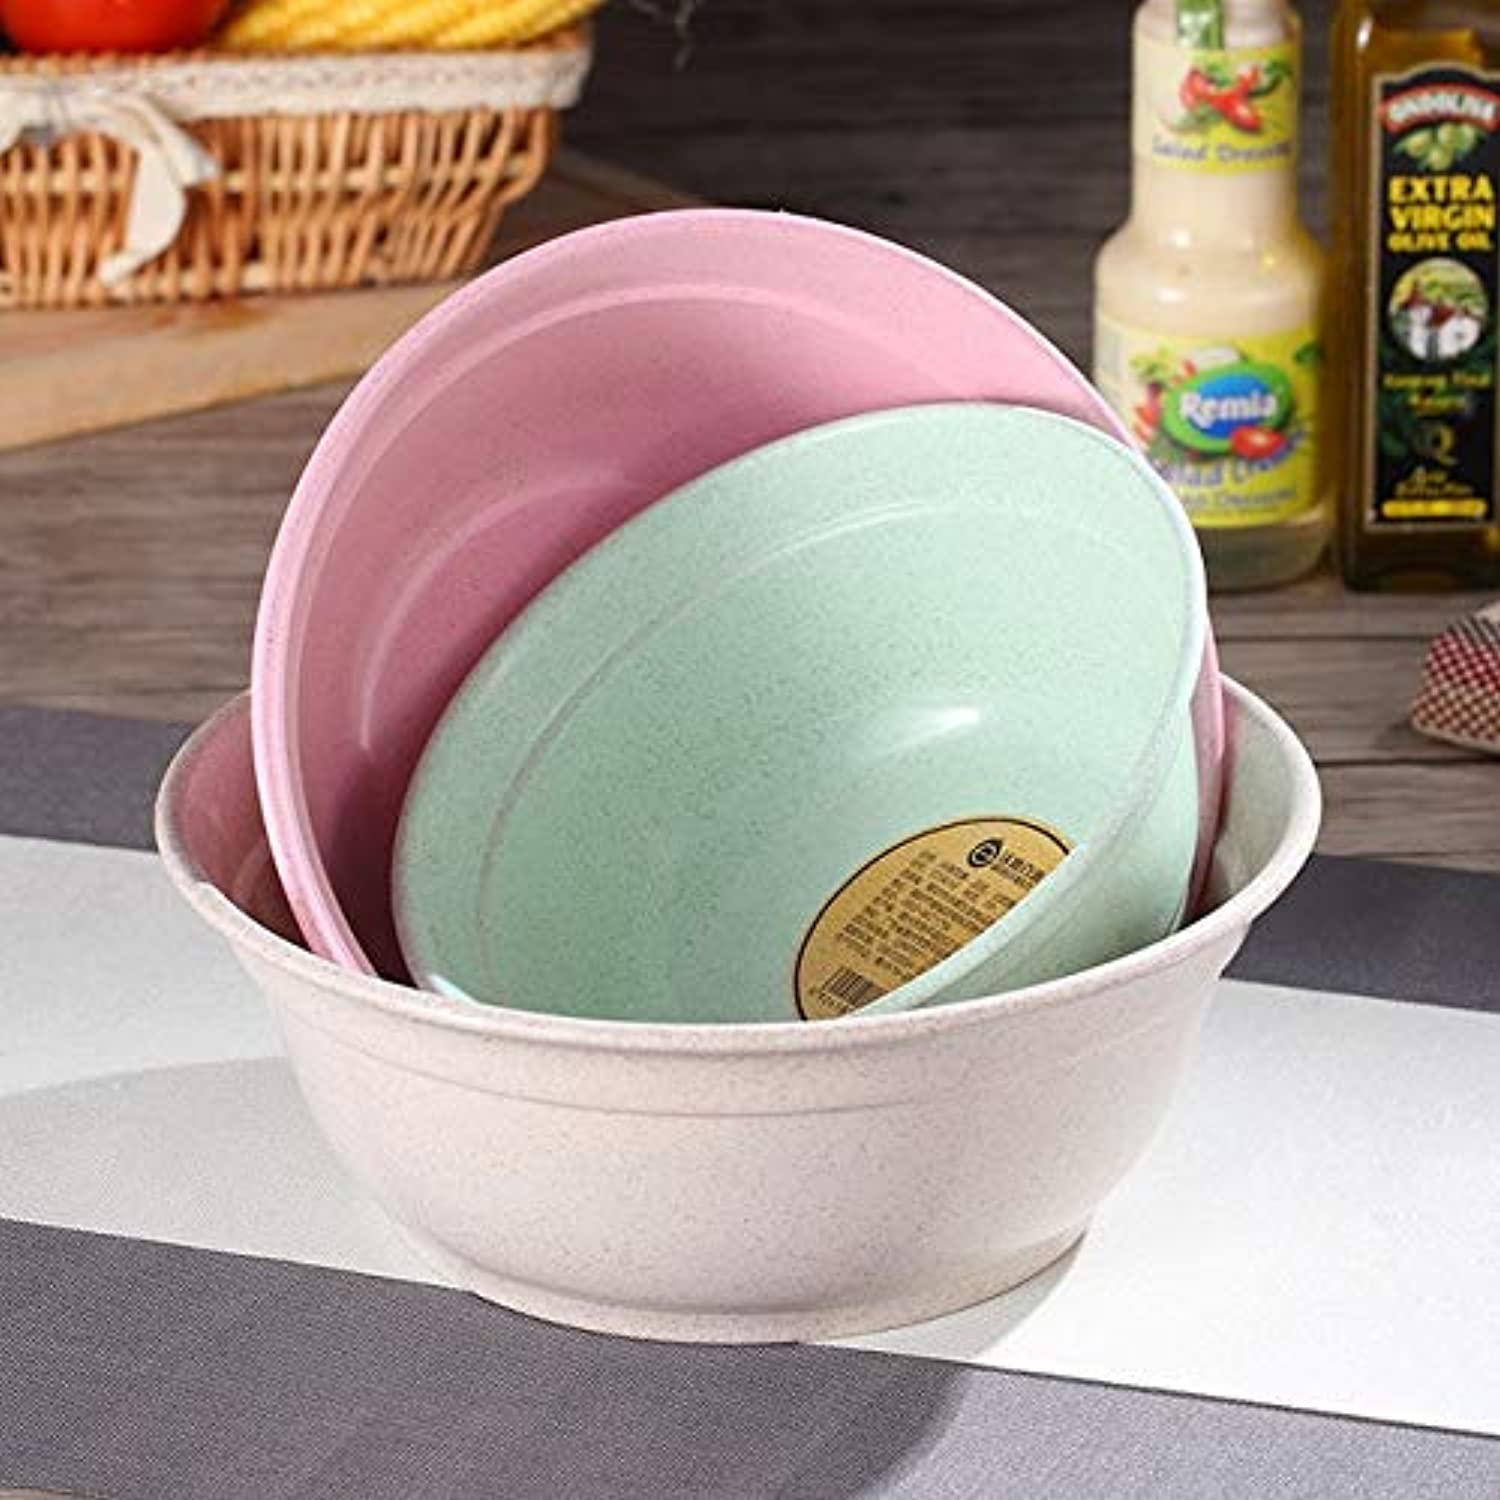 Farmerly WORTHBUY 3Pcs Set Wheat Straw Kitchen Mixing Bowl Set Eco-Friendly Plastic Fruit Vegetable Bowl Salad Food Containers Bowls   3 Pcs 1 Set